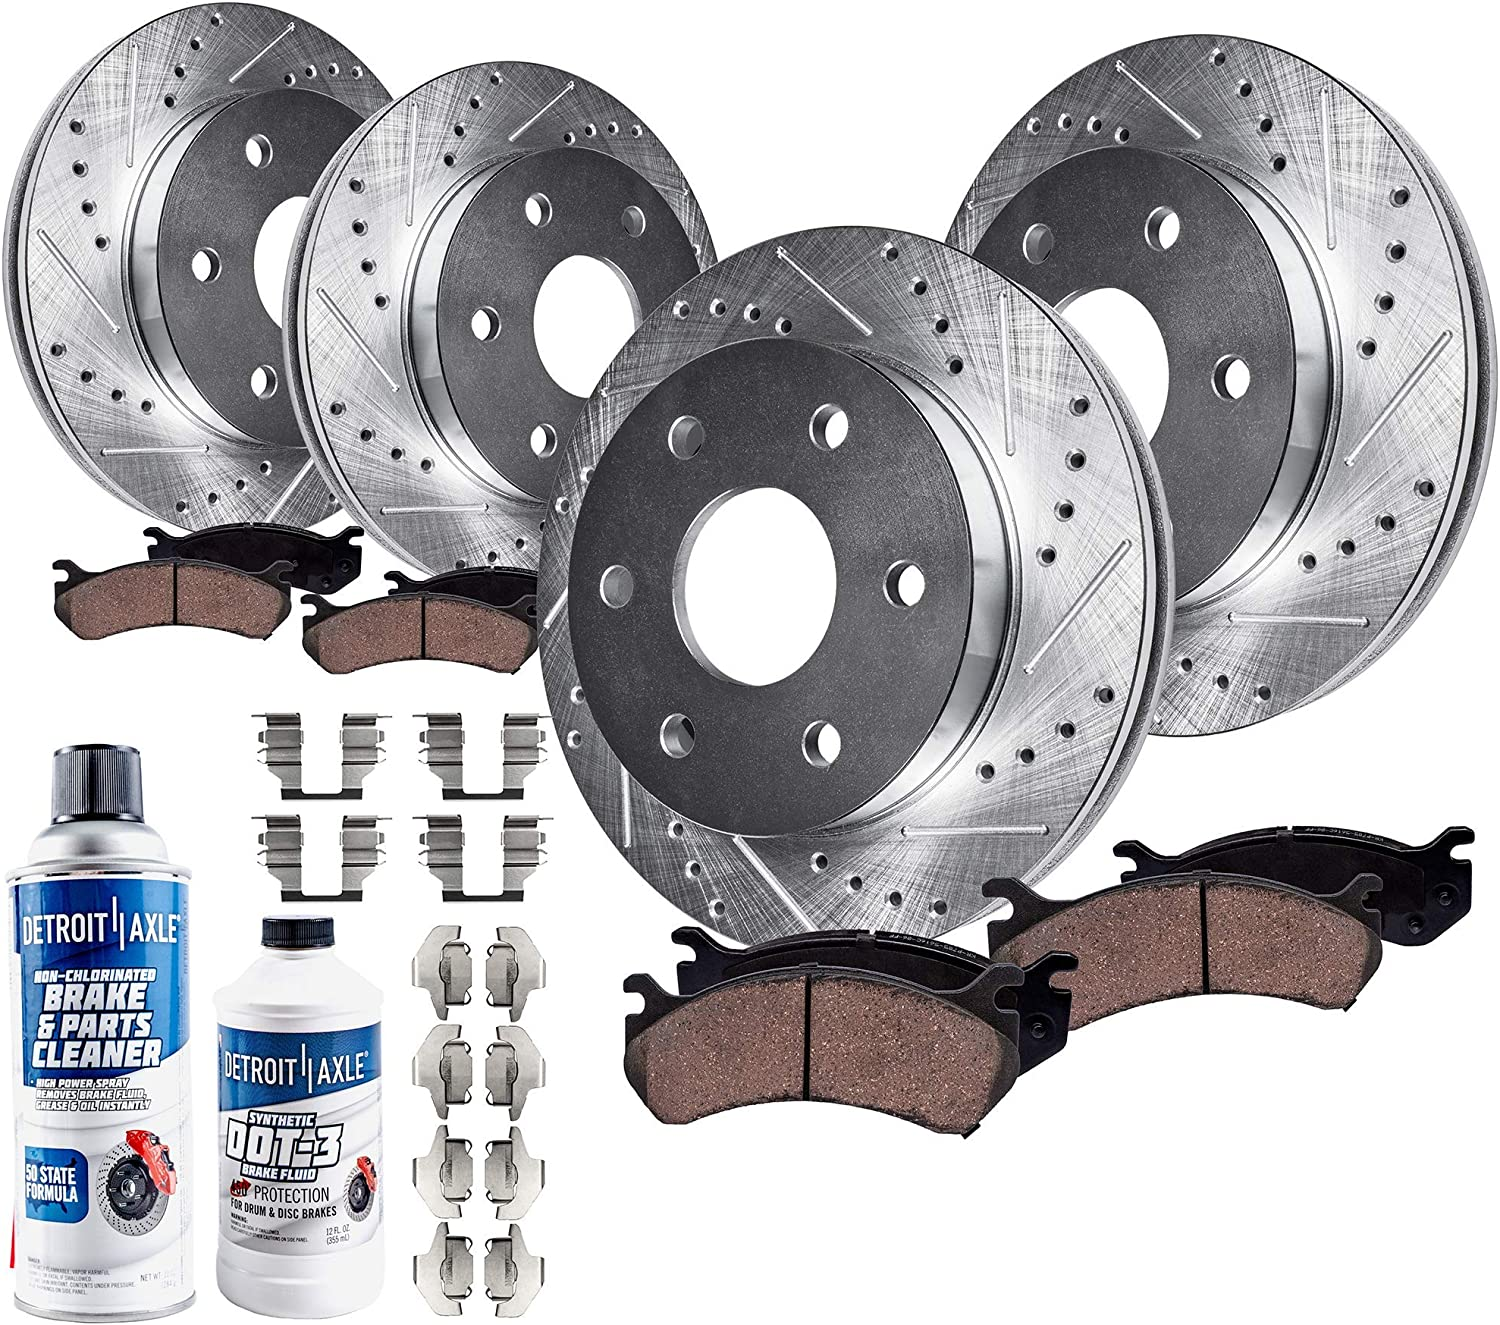 Detroit Axle - Front and Rear Drilled and Slotted Disc Brake Kit Rotors